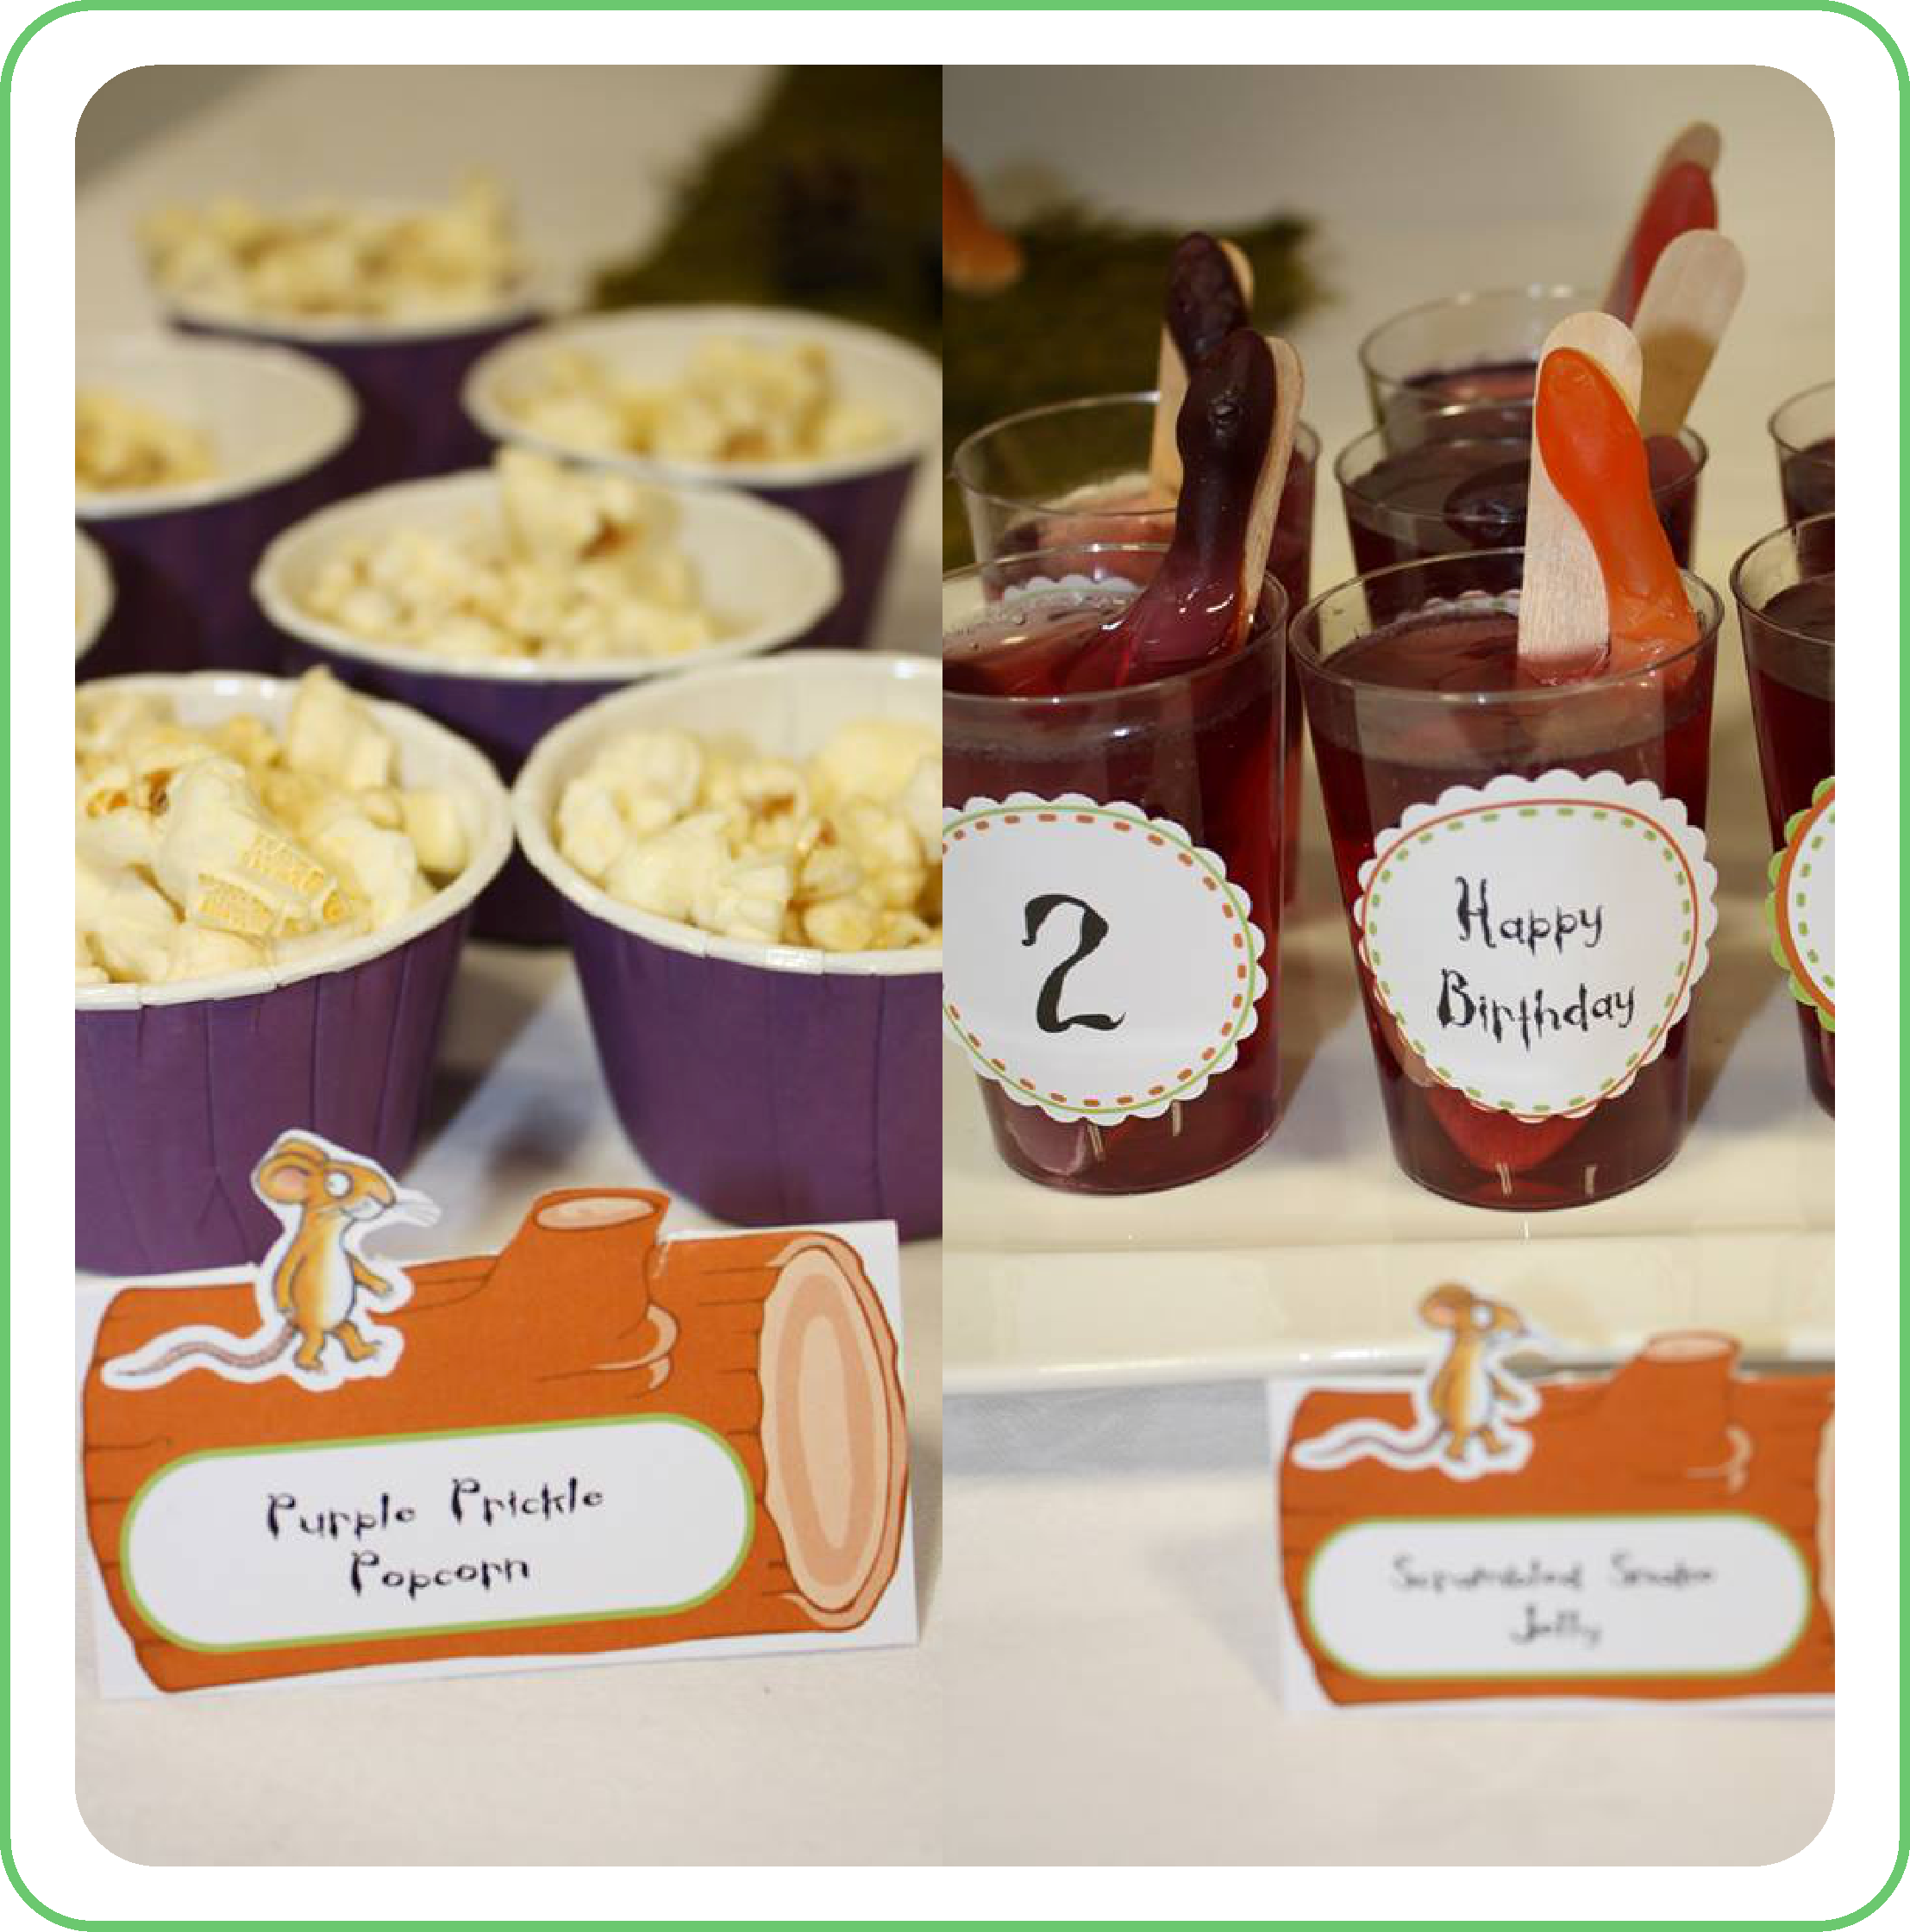 Gruffalo Party Food Ideas.png